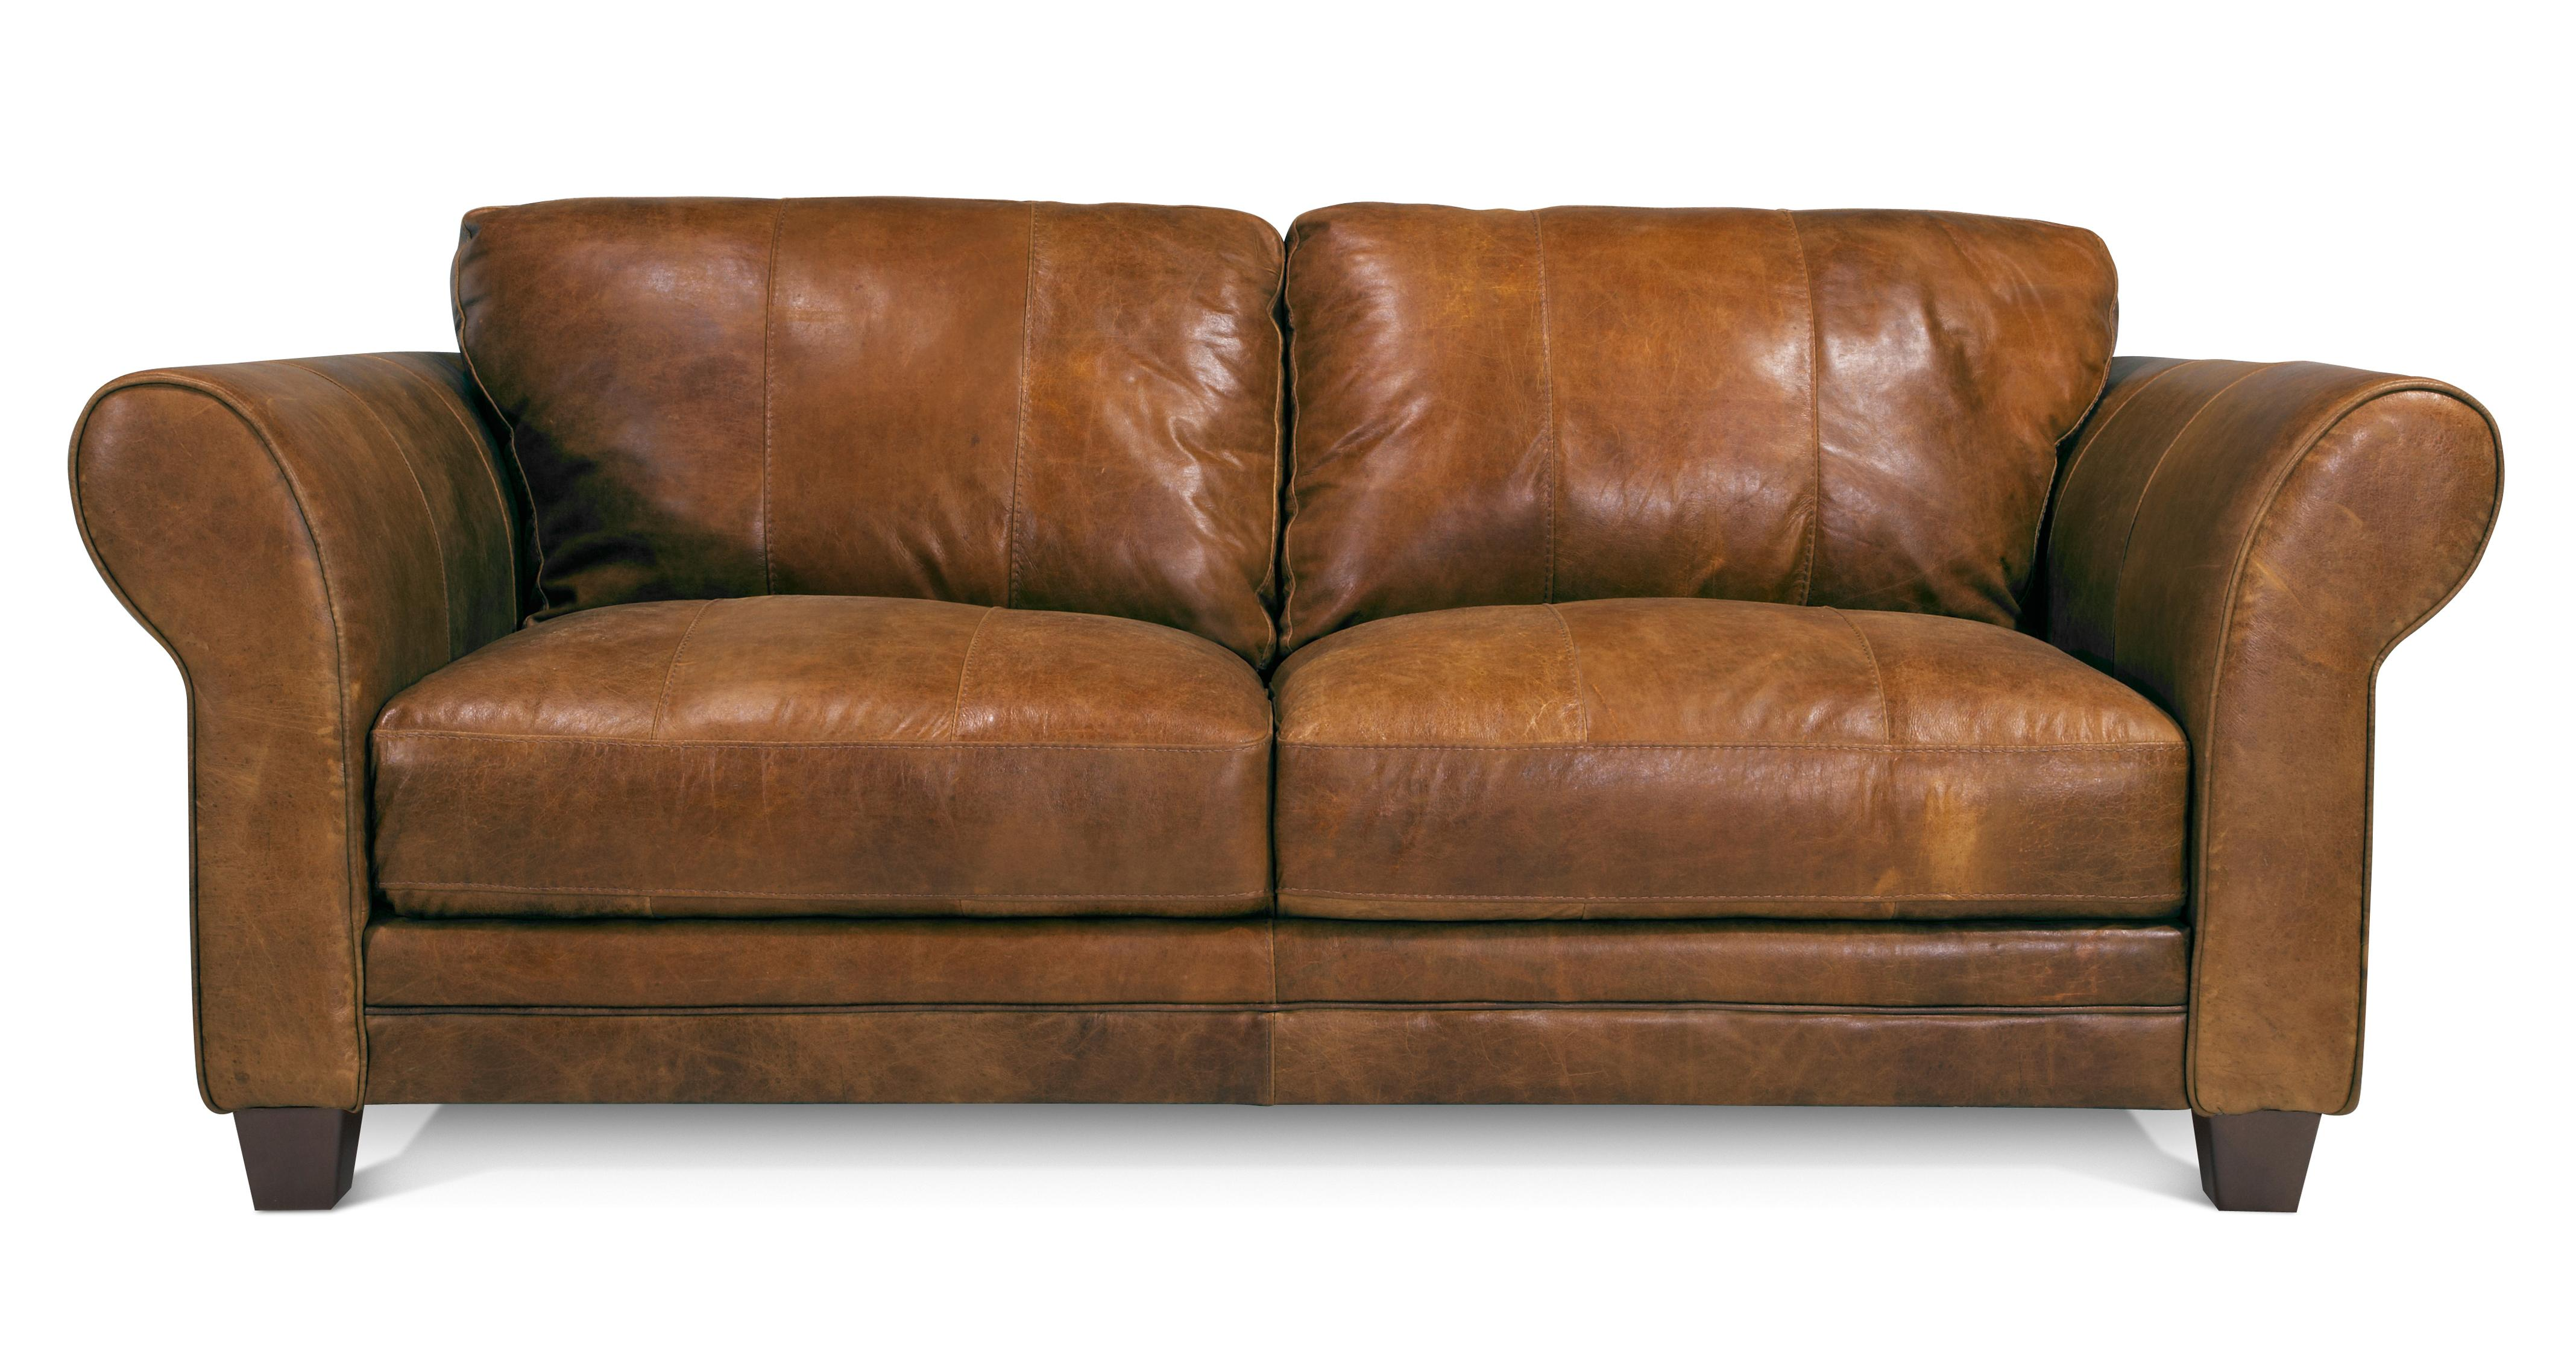 Comfy leather sofa -